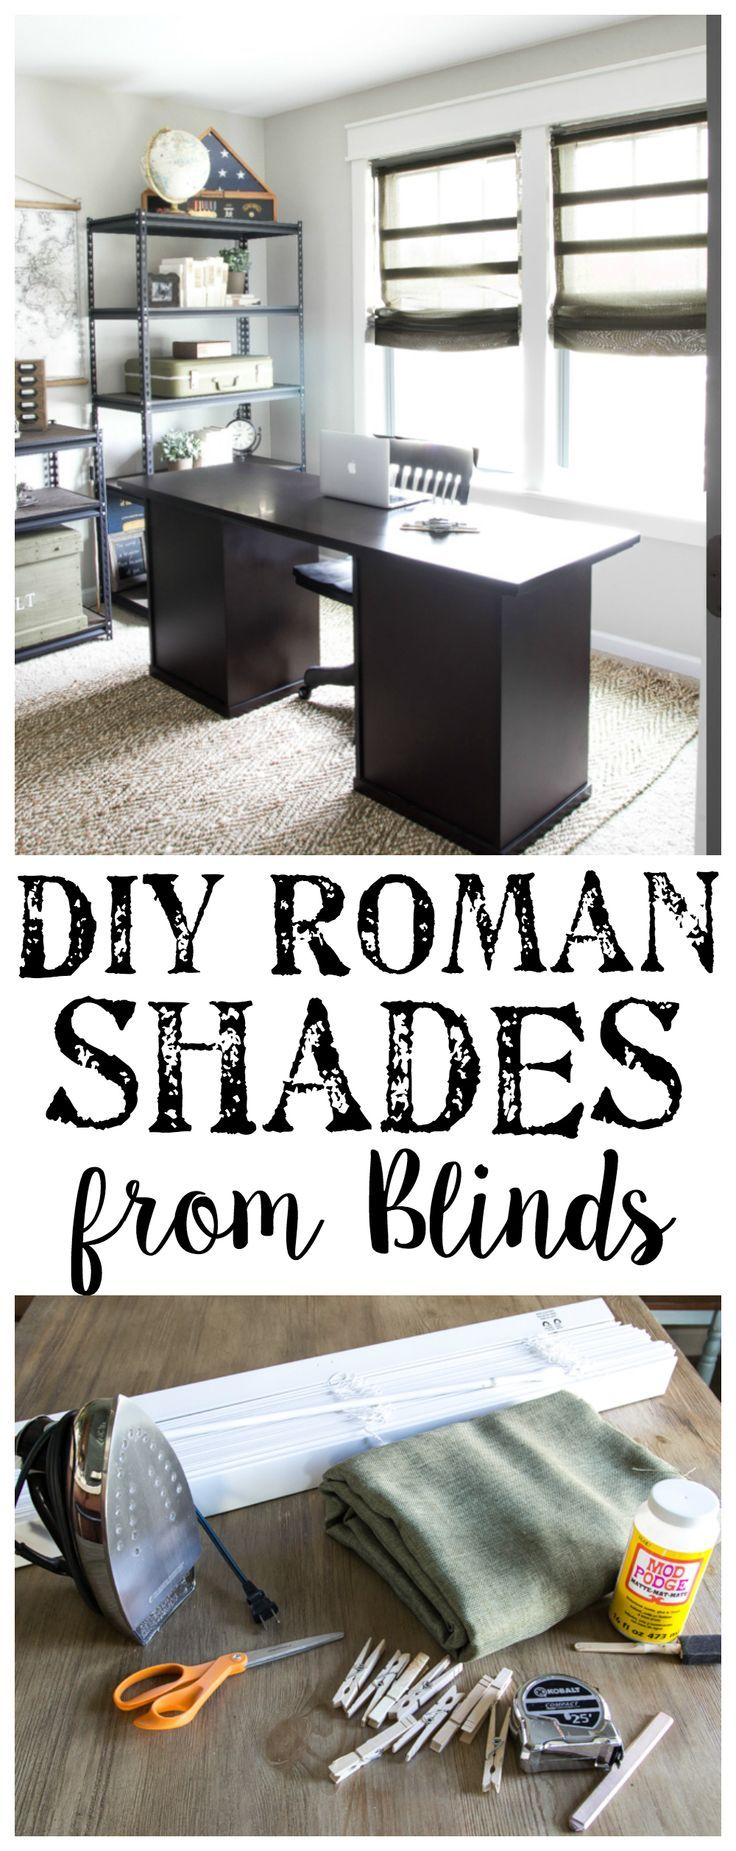 DIY Burlap Roman Shades from Blinds | http://blesserhouse.com - A beautiful way to make pricey looking window shades for cheap!